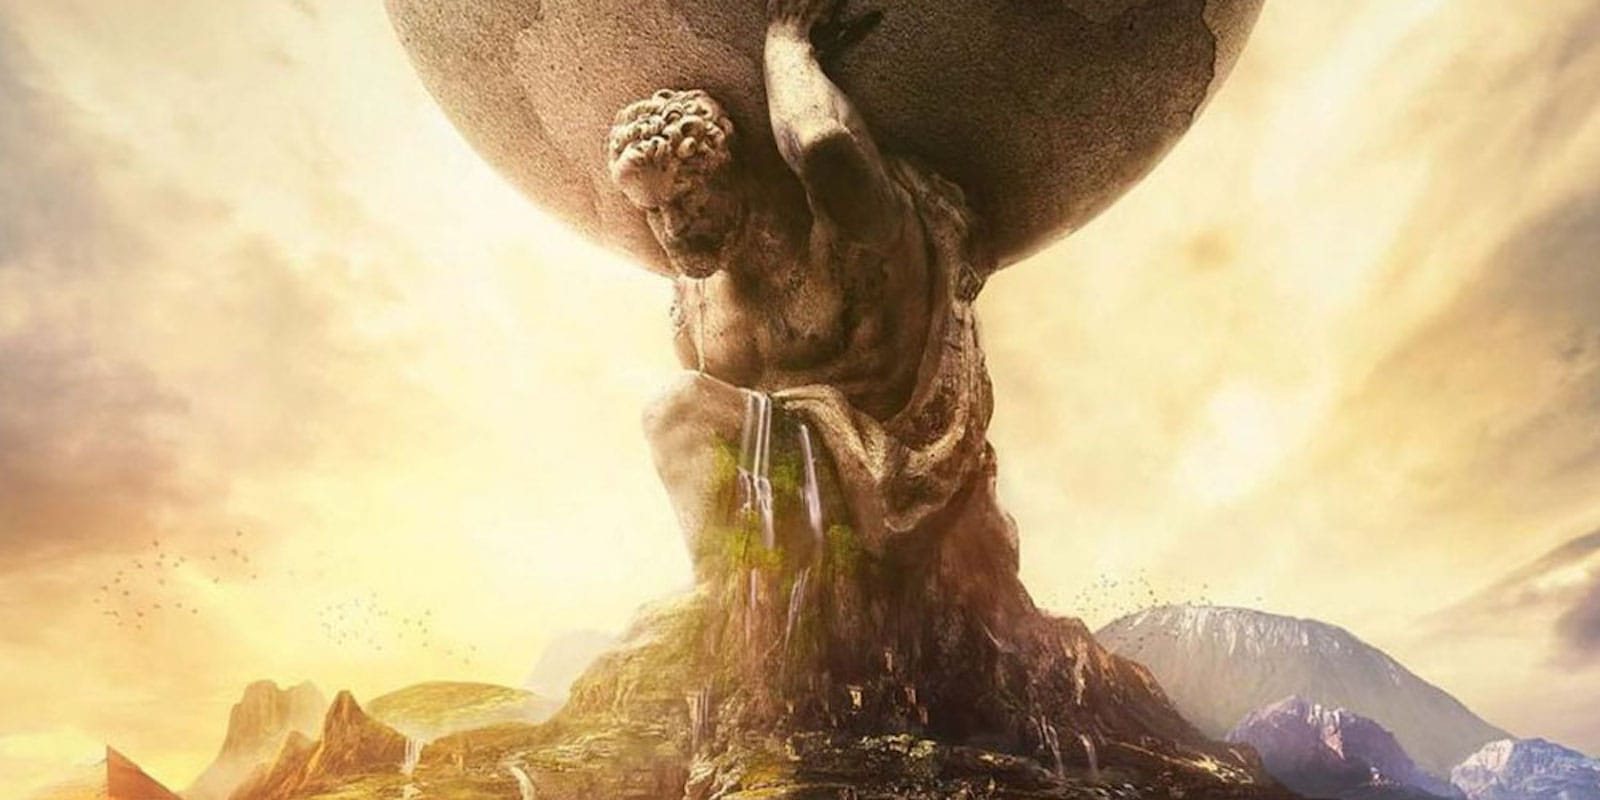 Civilization VI shows that classic games are classic for a reason.